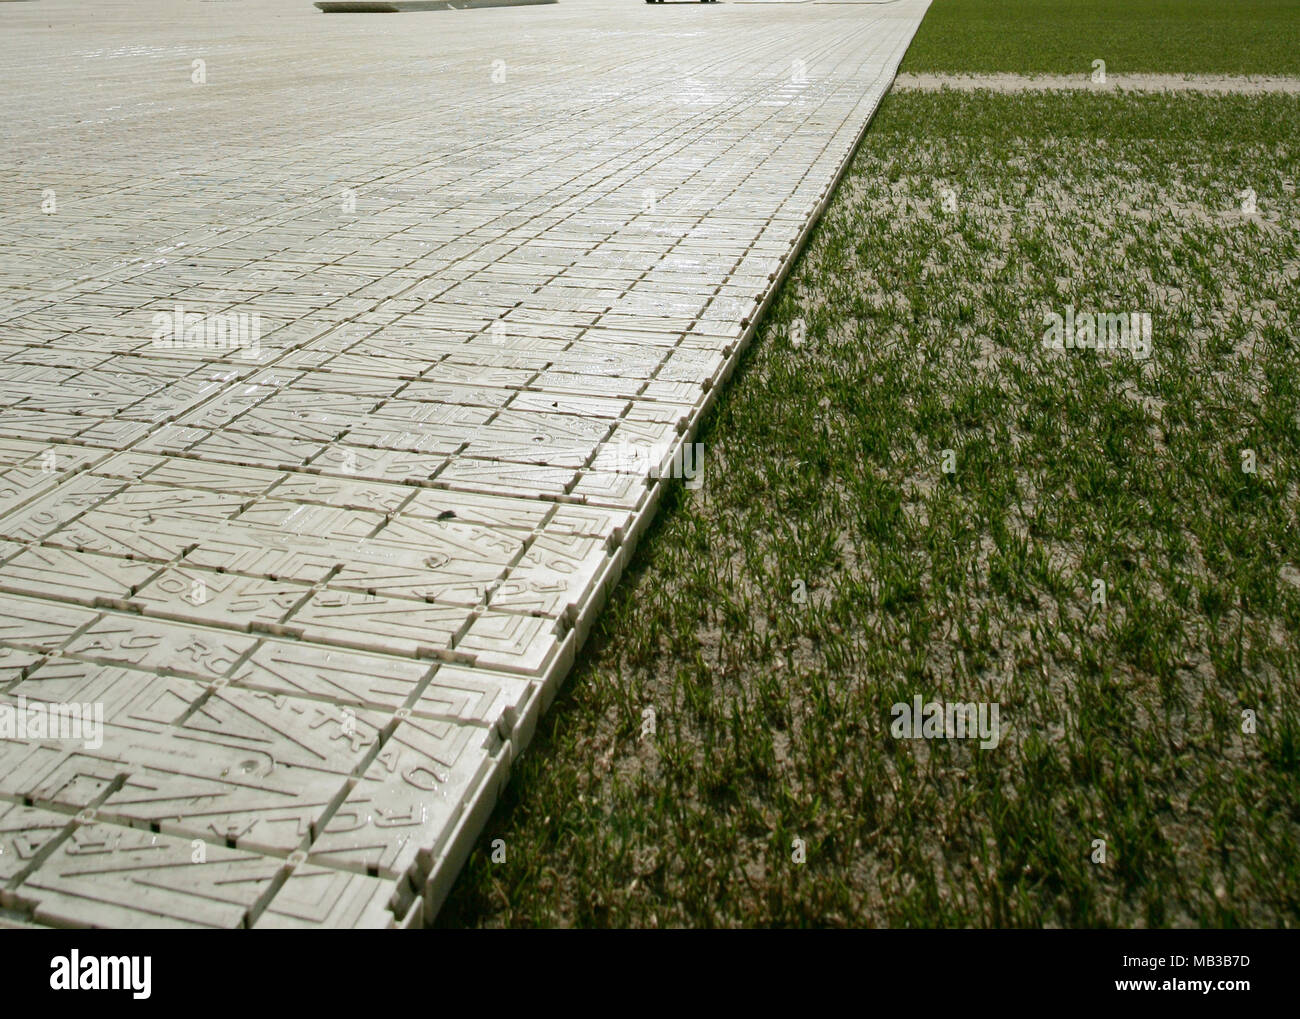 a temporary plastic flooring surface to cover a football pitch so